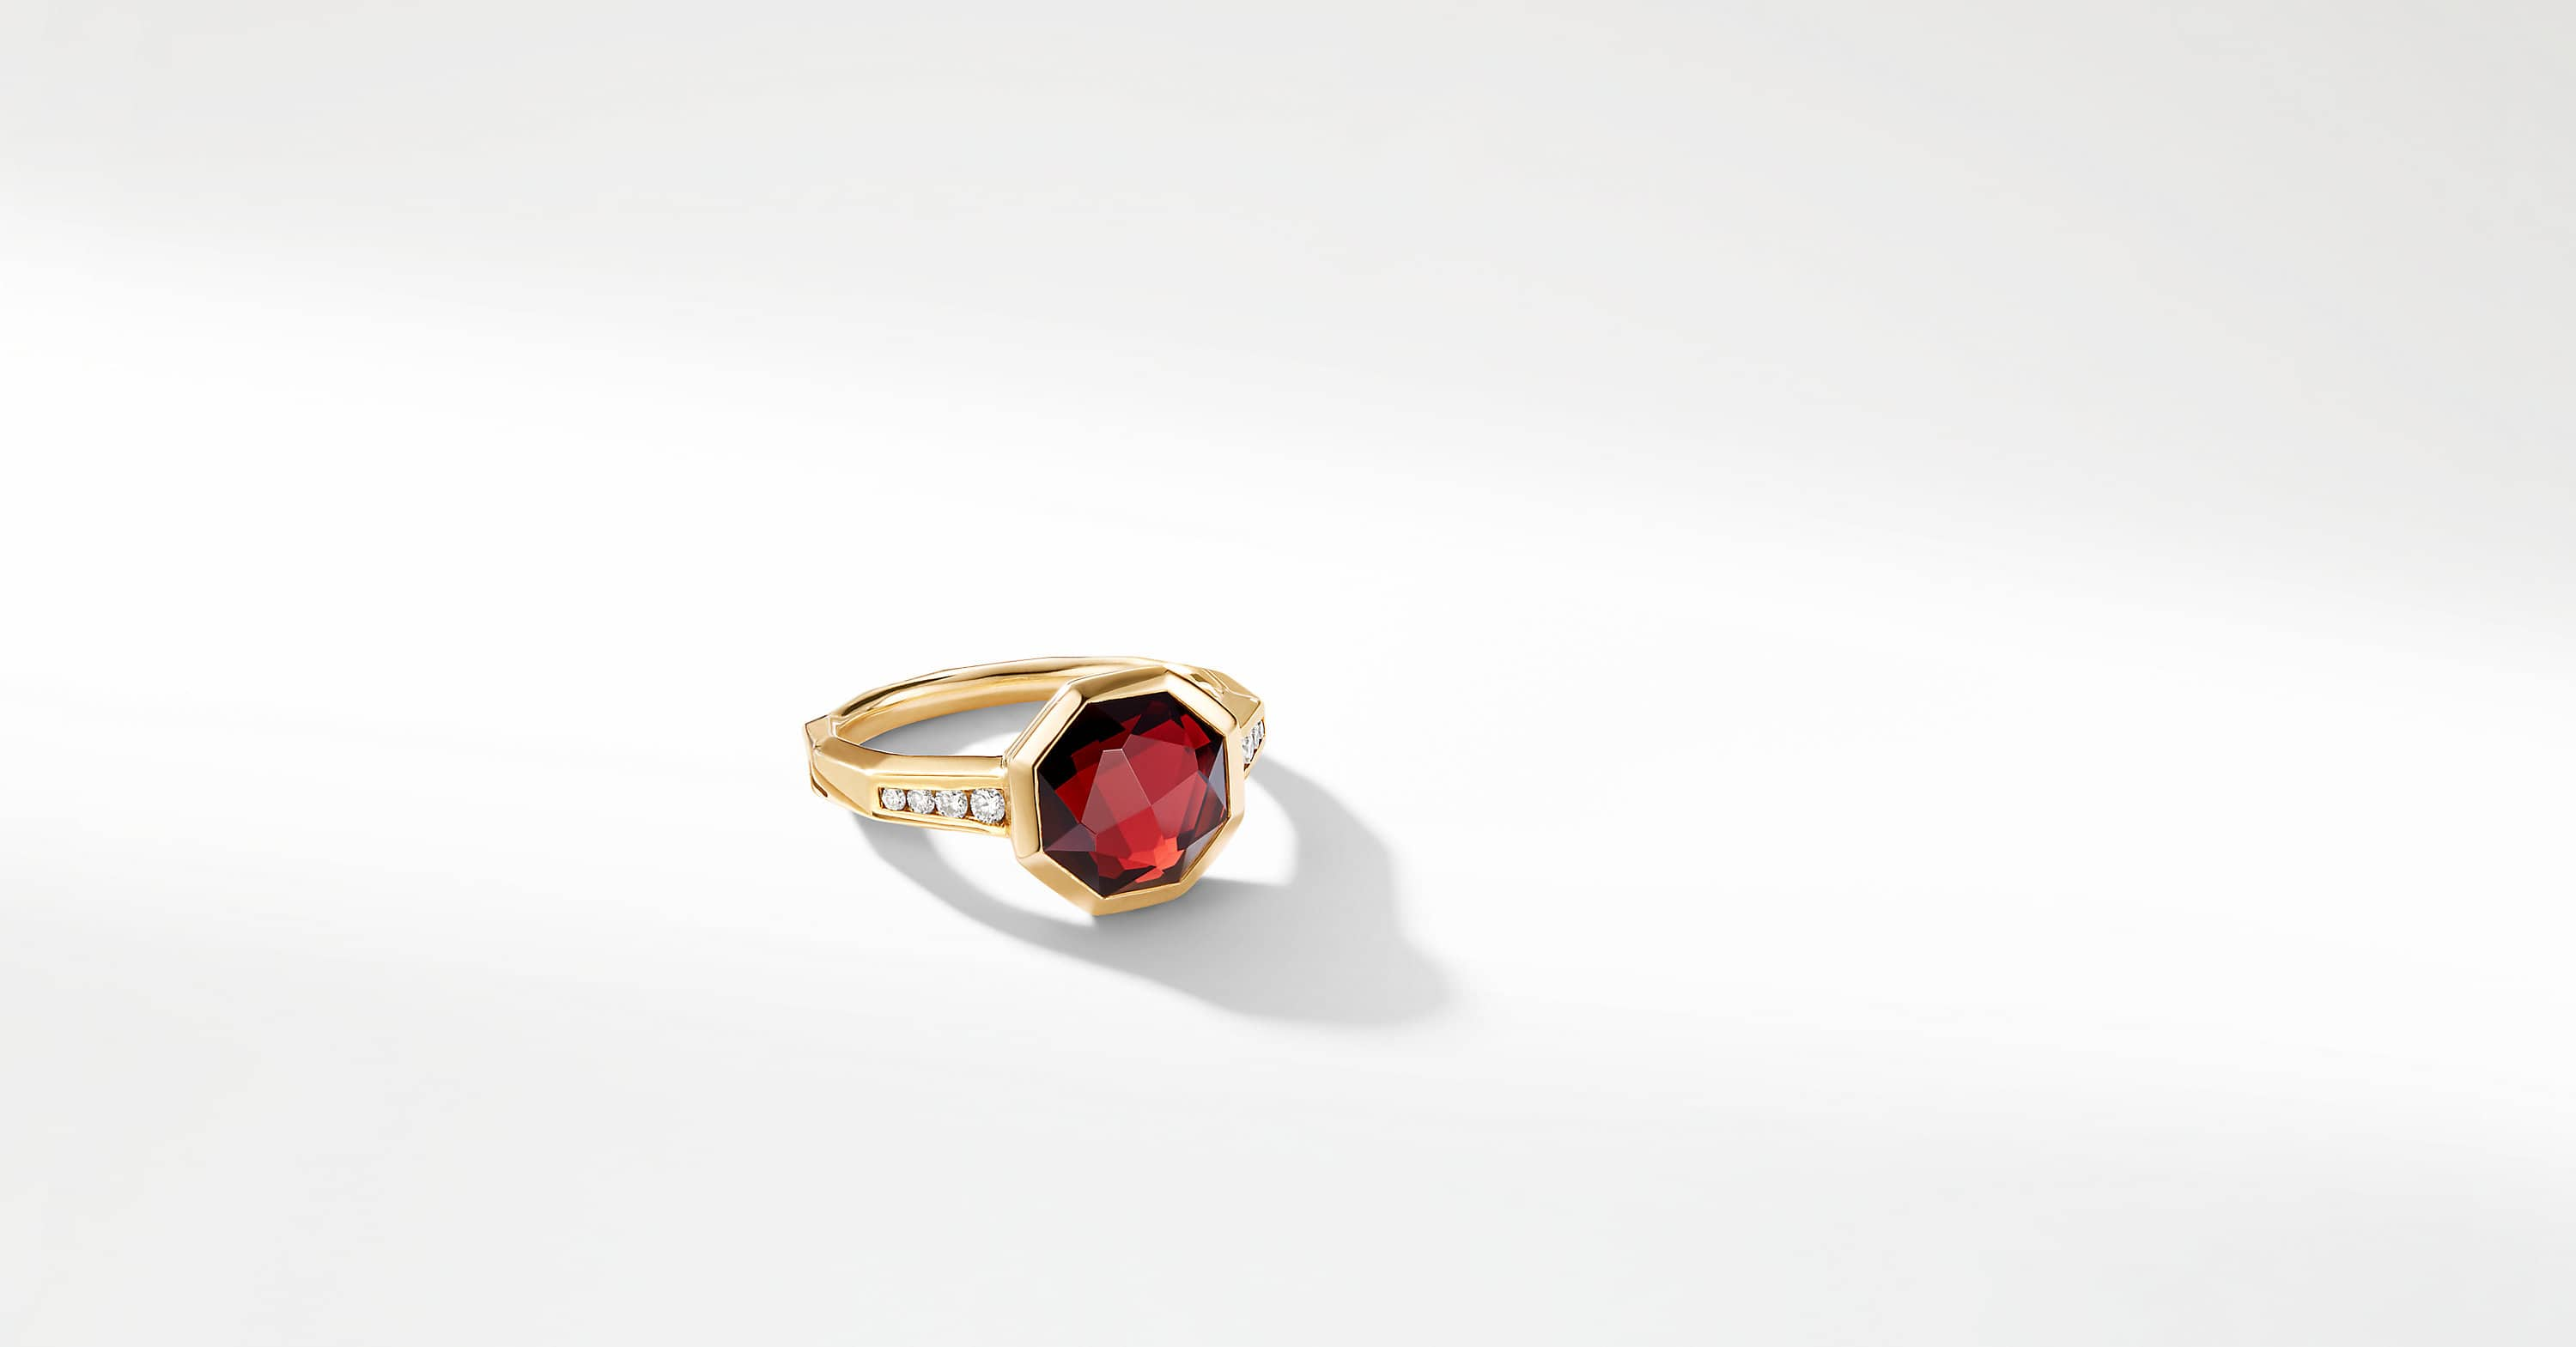 Guilin Octagon Ring with Diamonds in 18K Gold